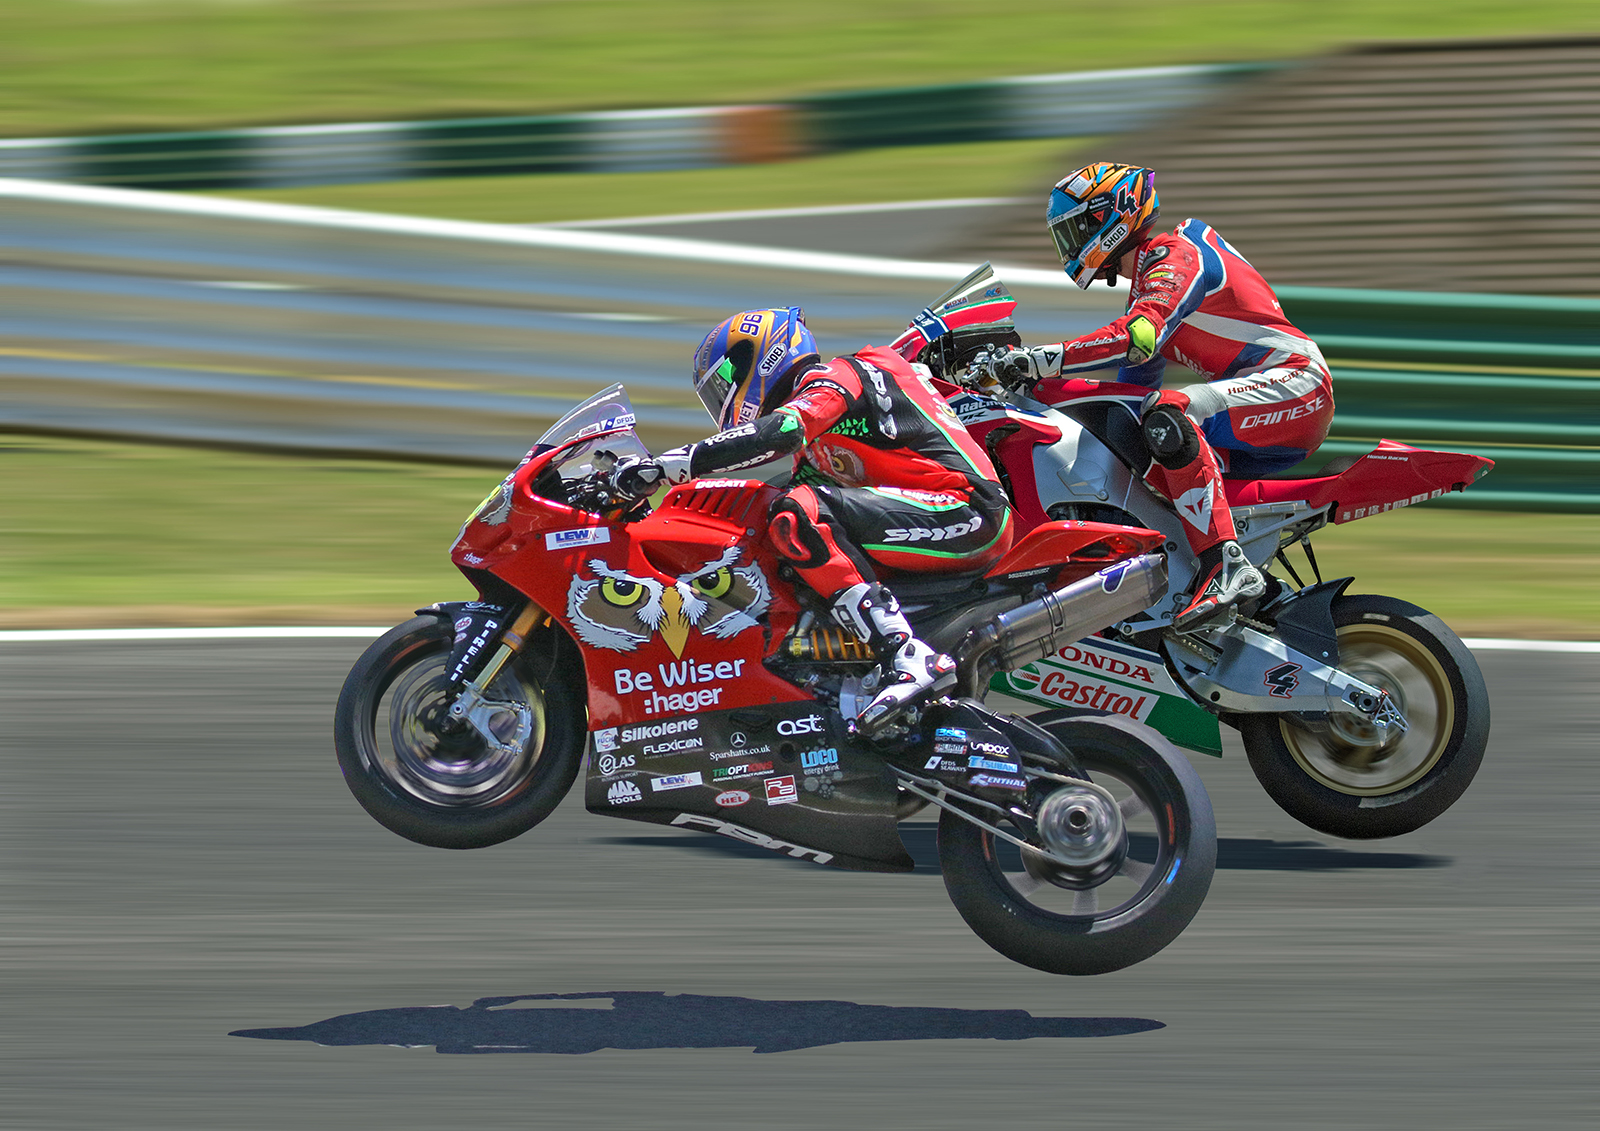 PL7D2_7920 - Final Back ground - blurred - perfect - Bikes close together1600px.jpg